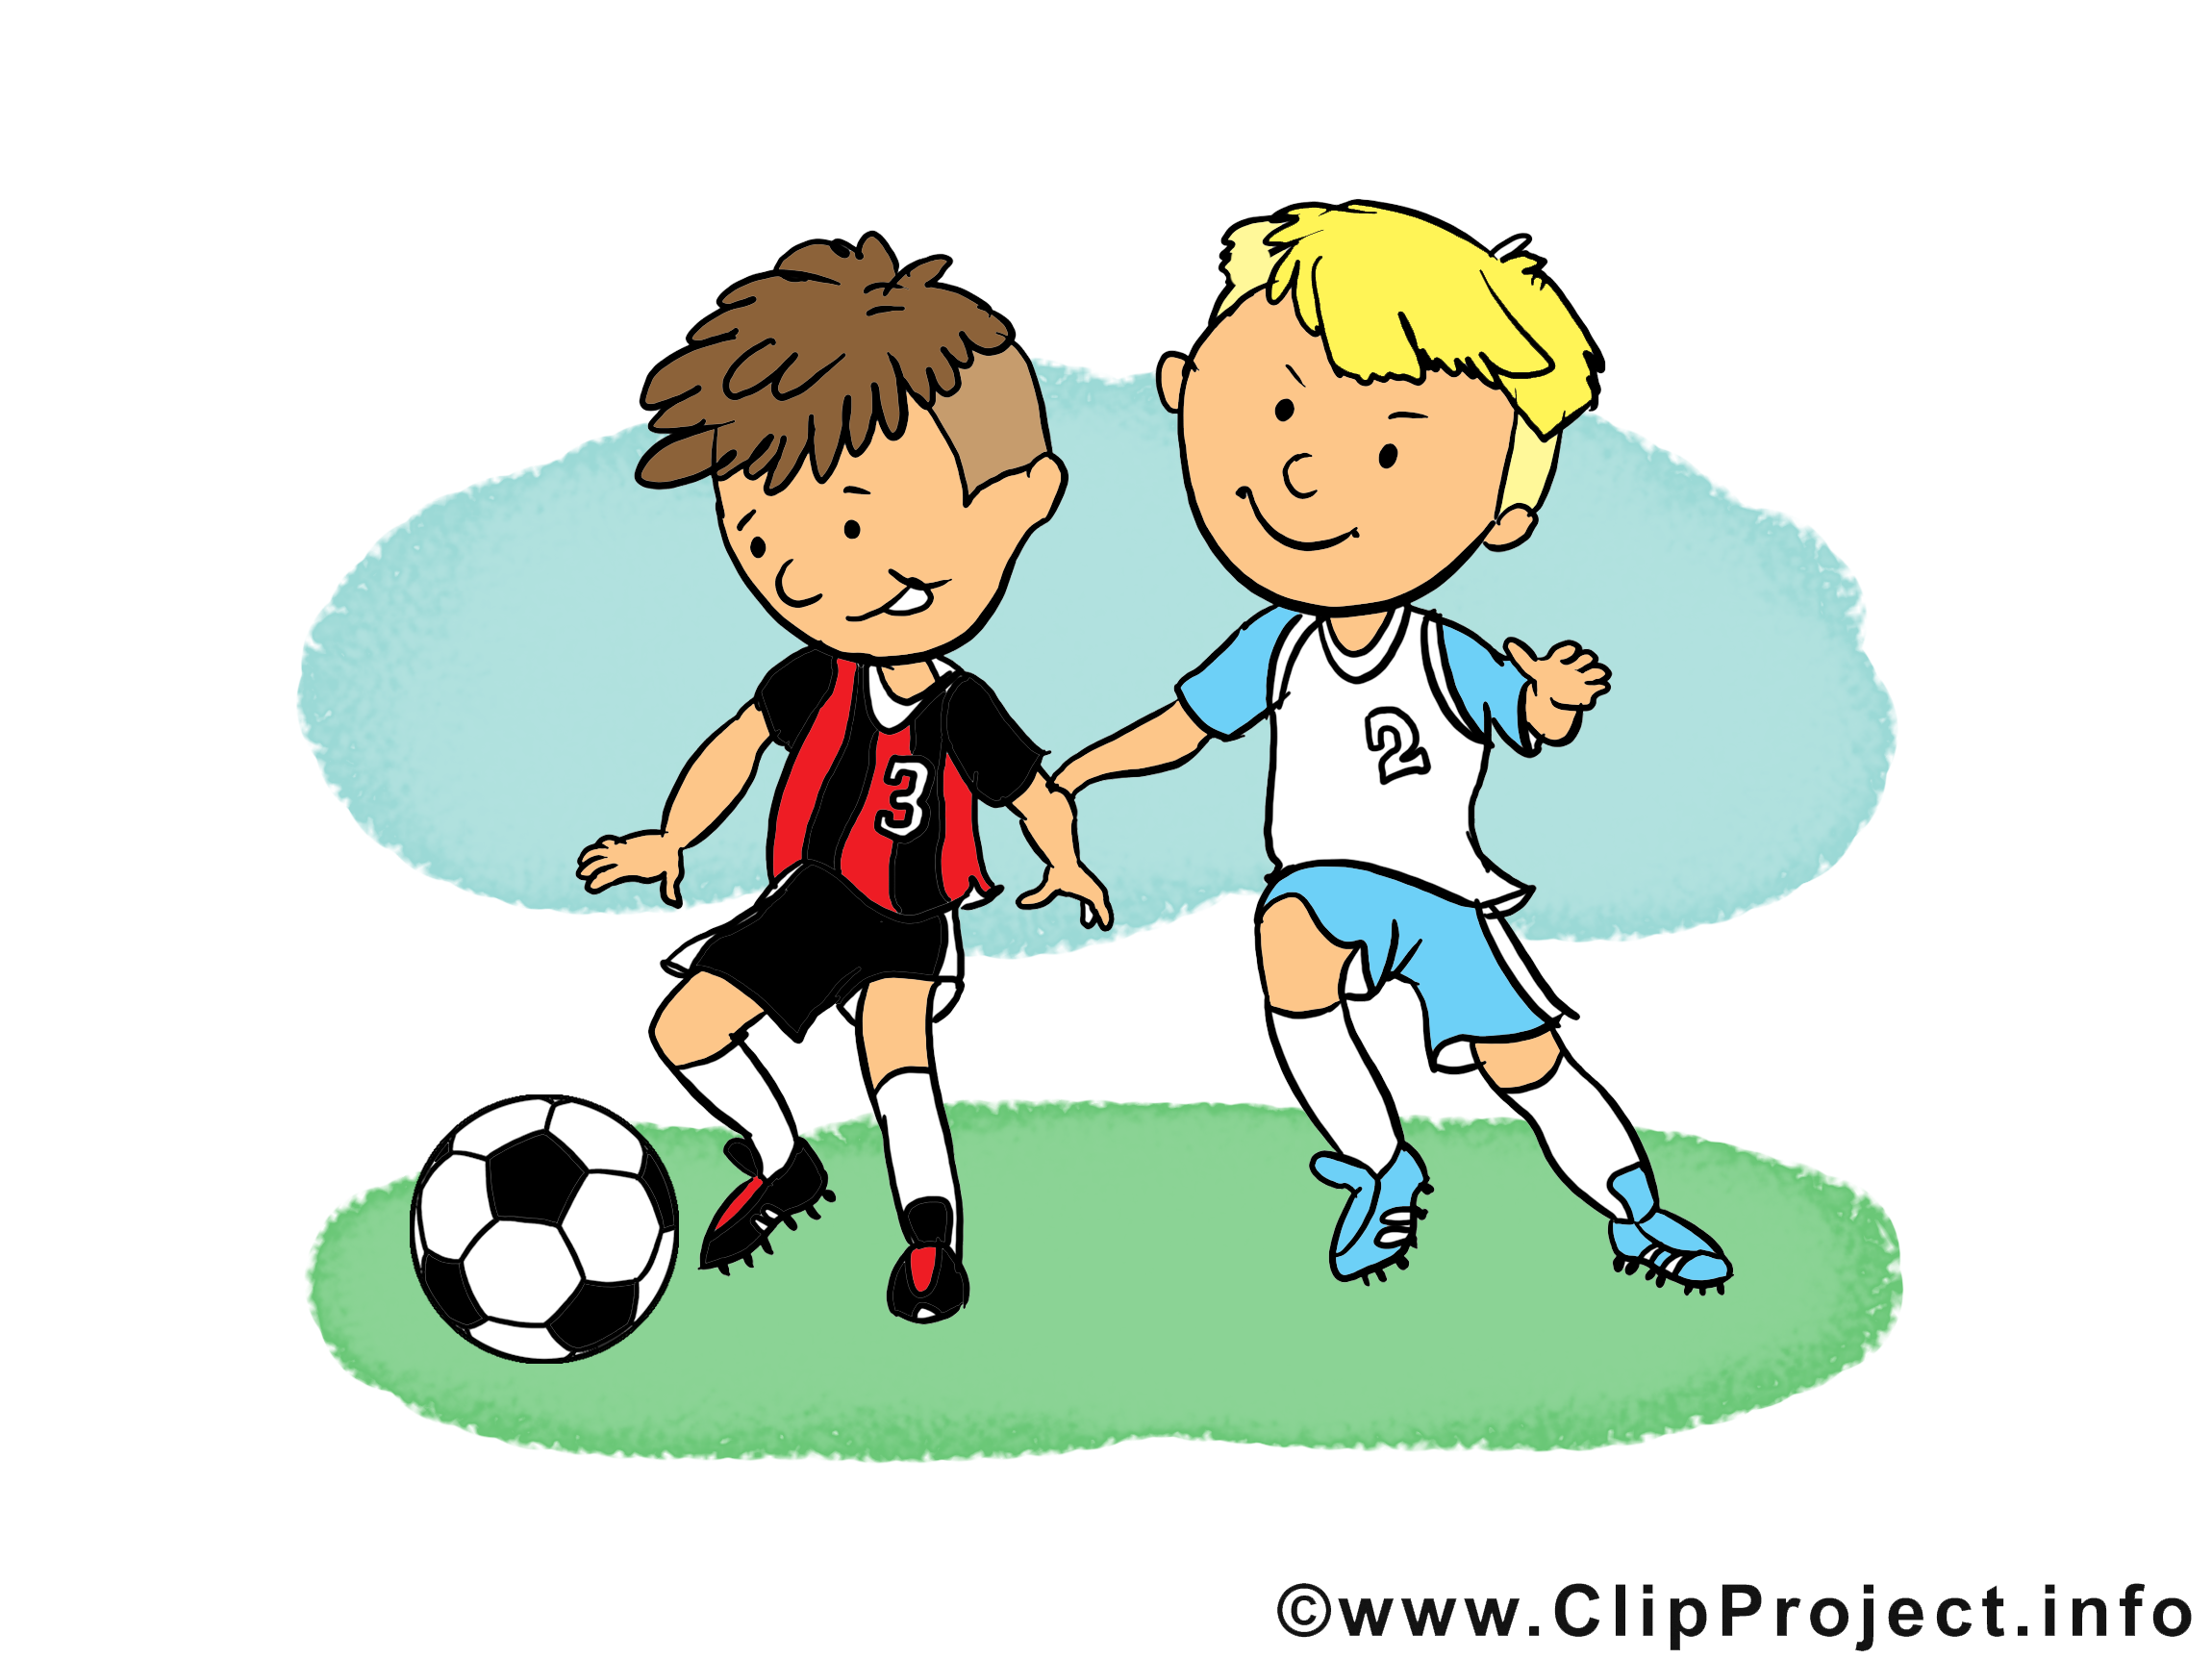 Enfants image gratuite - Football cliparts